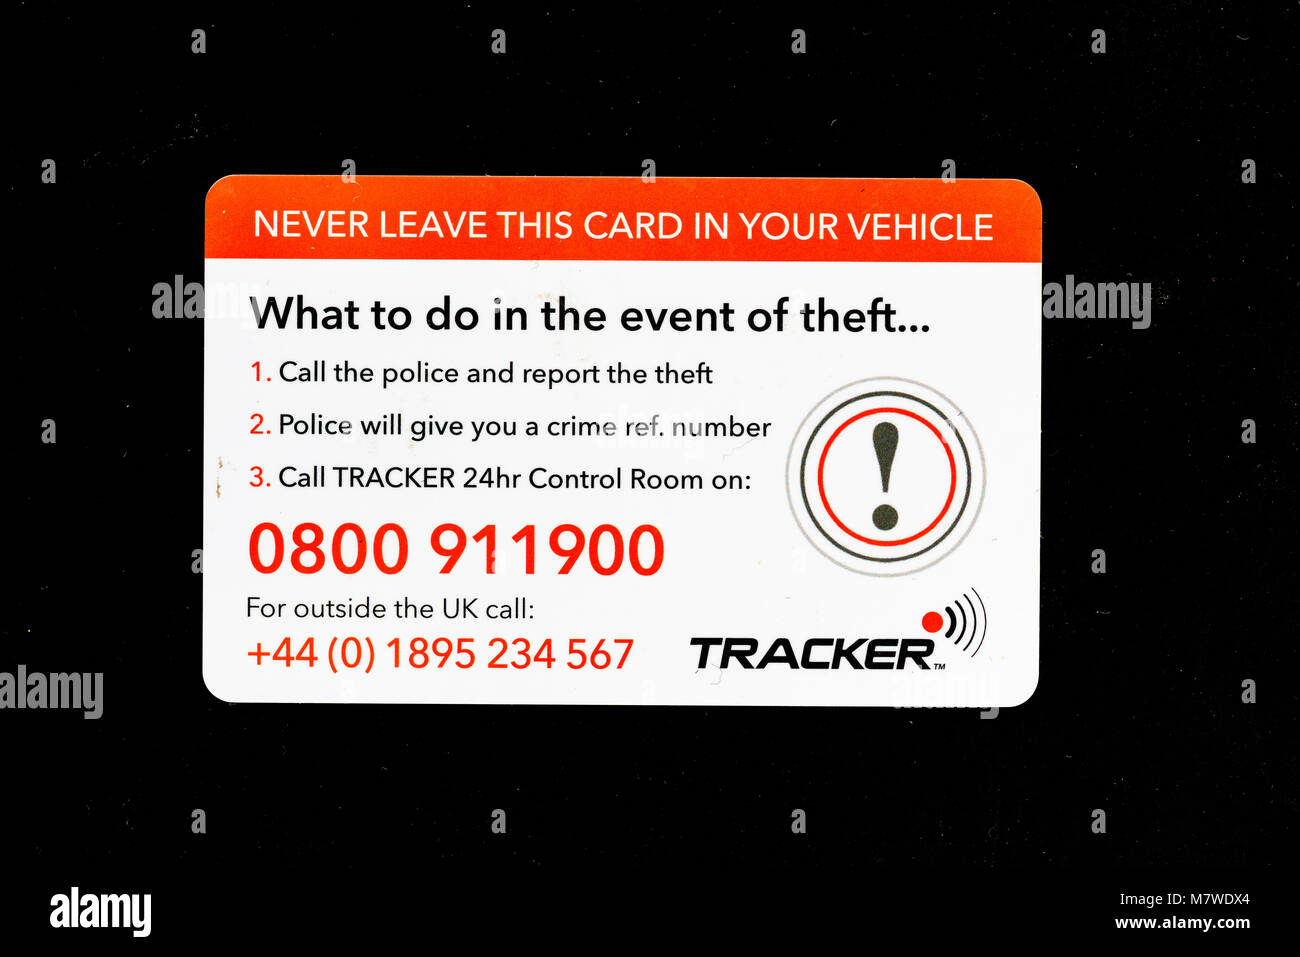 Plastic card, wallet size, of a vehicle tracked in case of theft, and giving information of what to do in the event - Stock Image